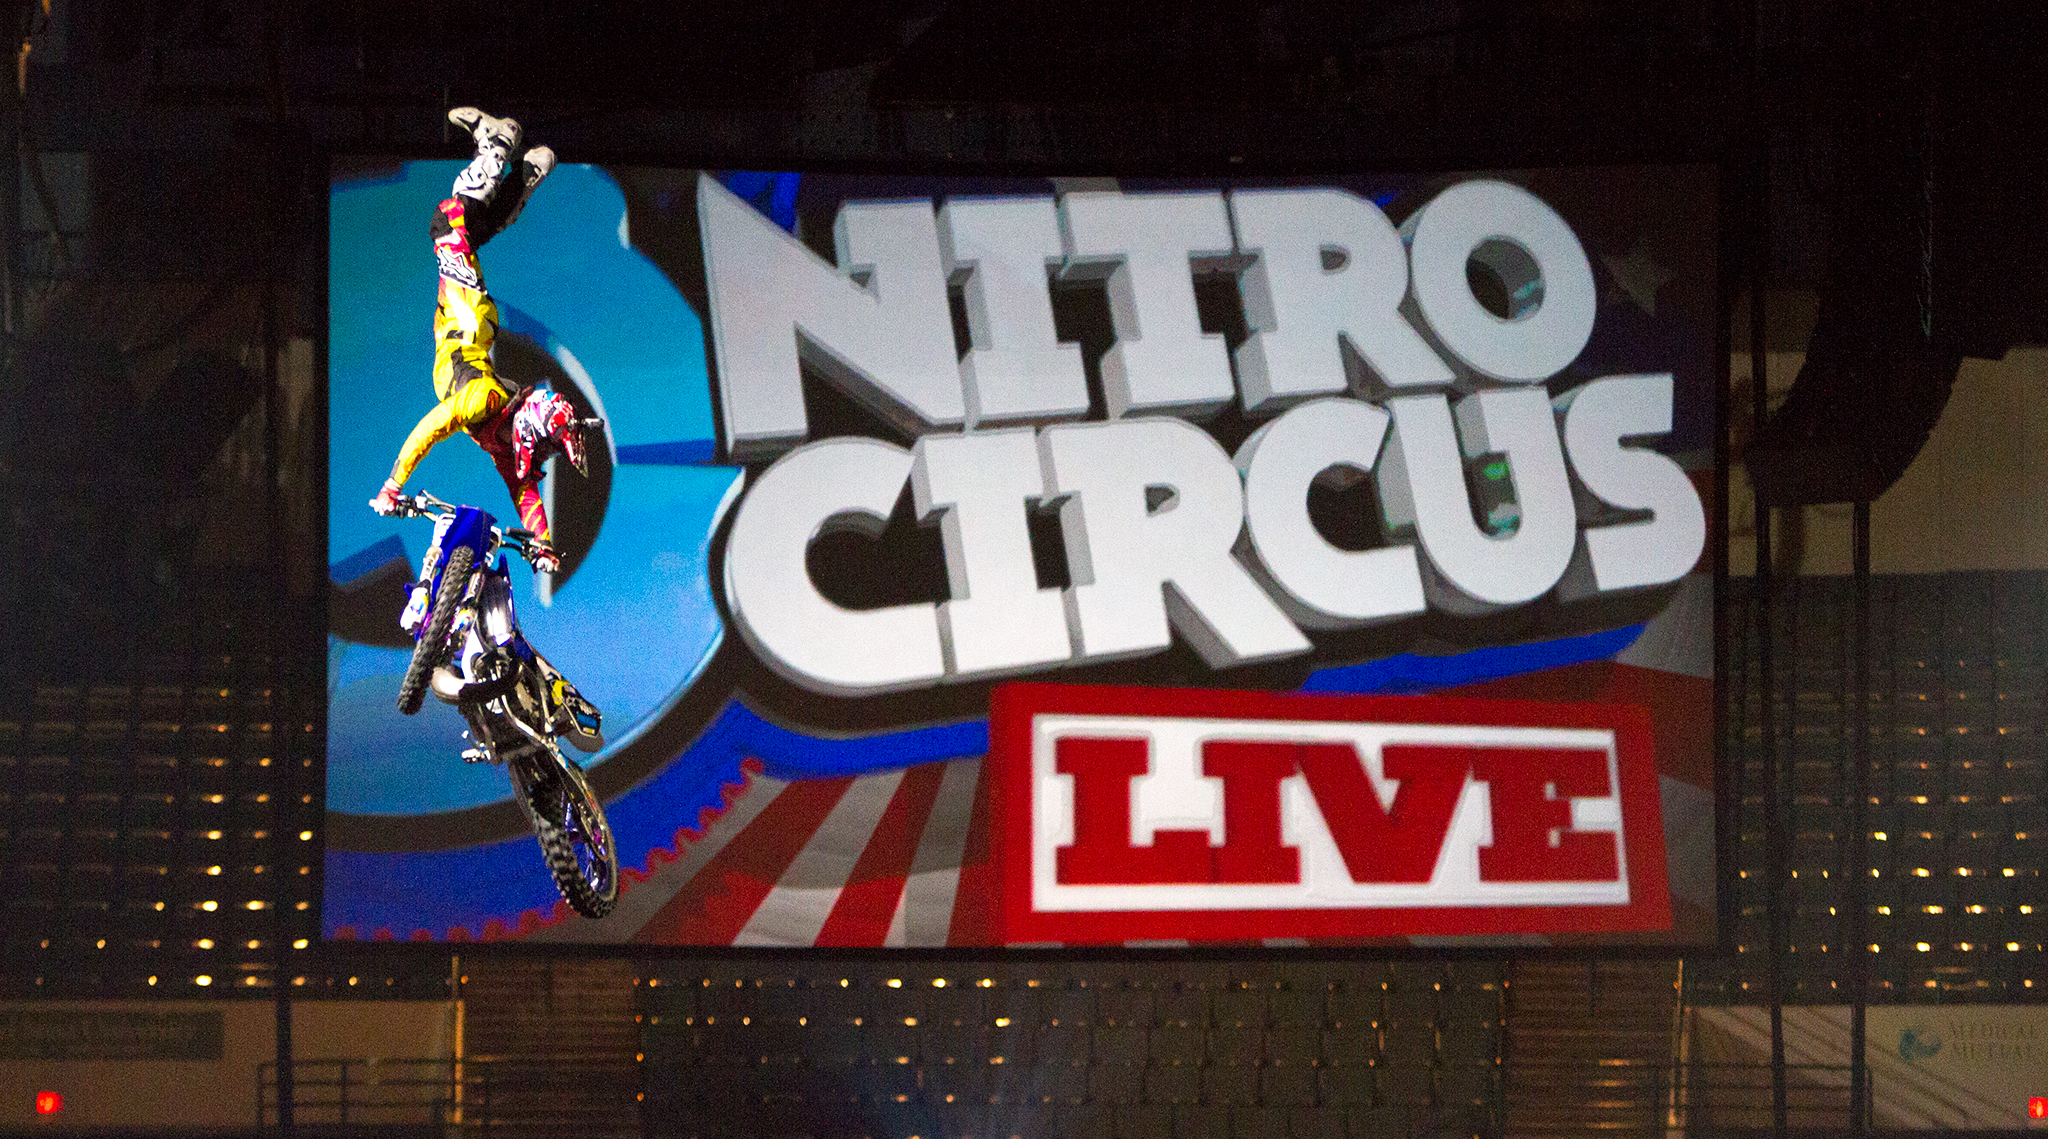 Nitro Circus Live travels to North America